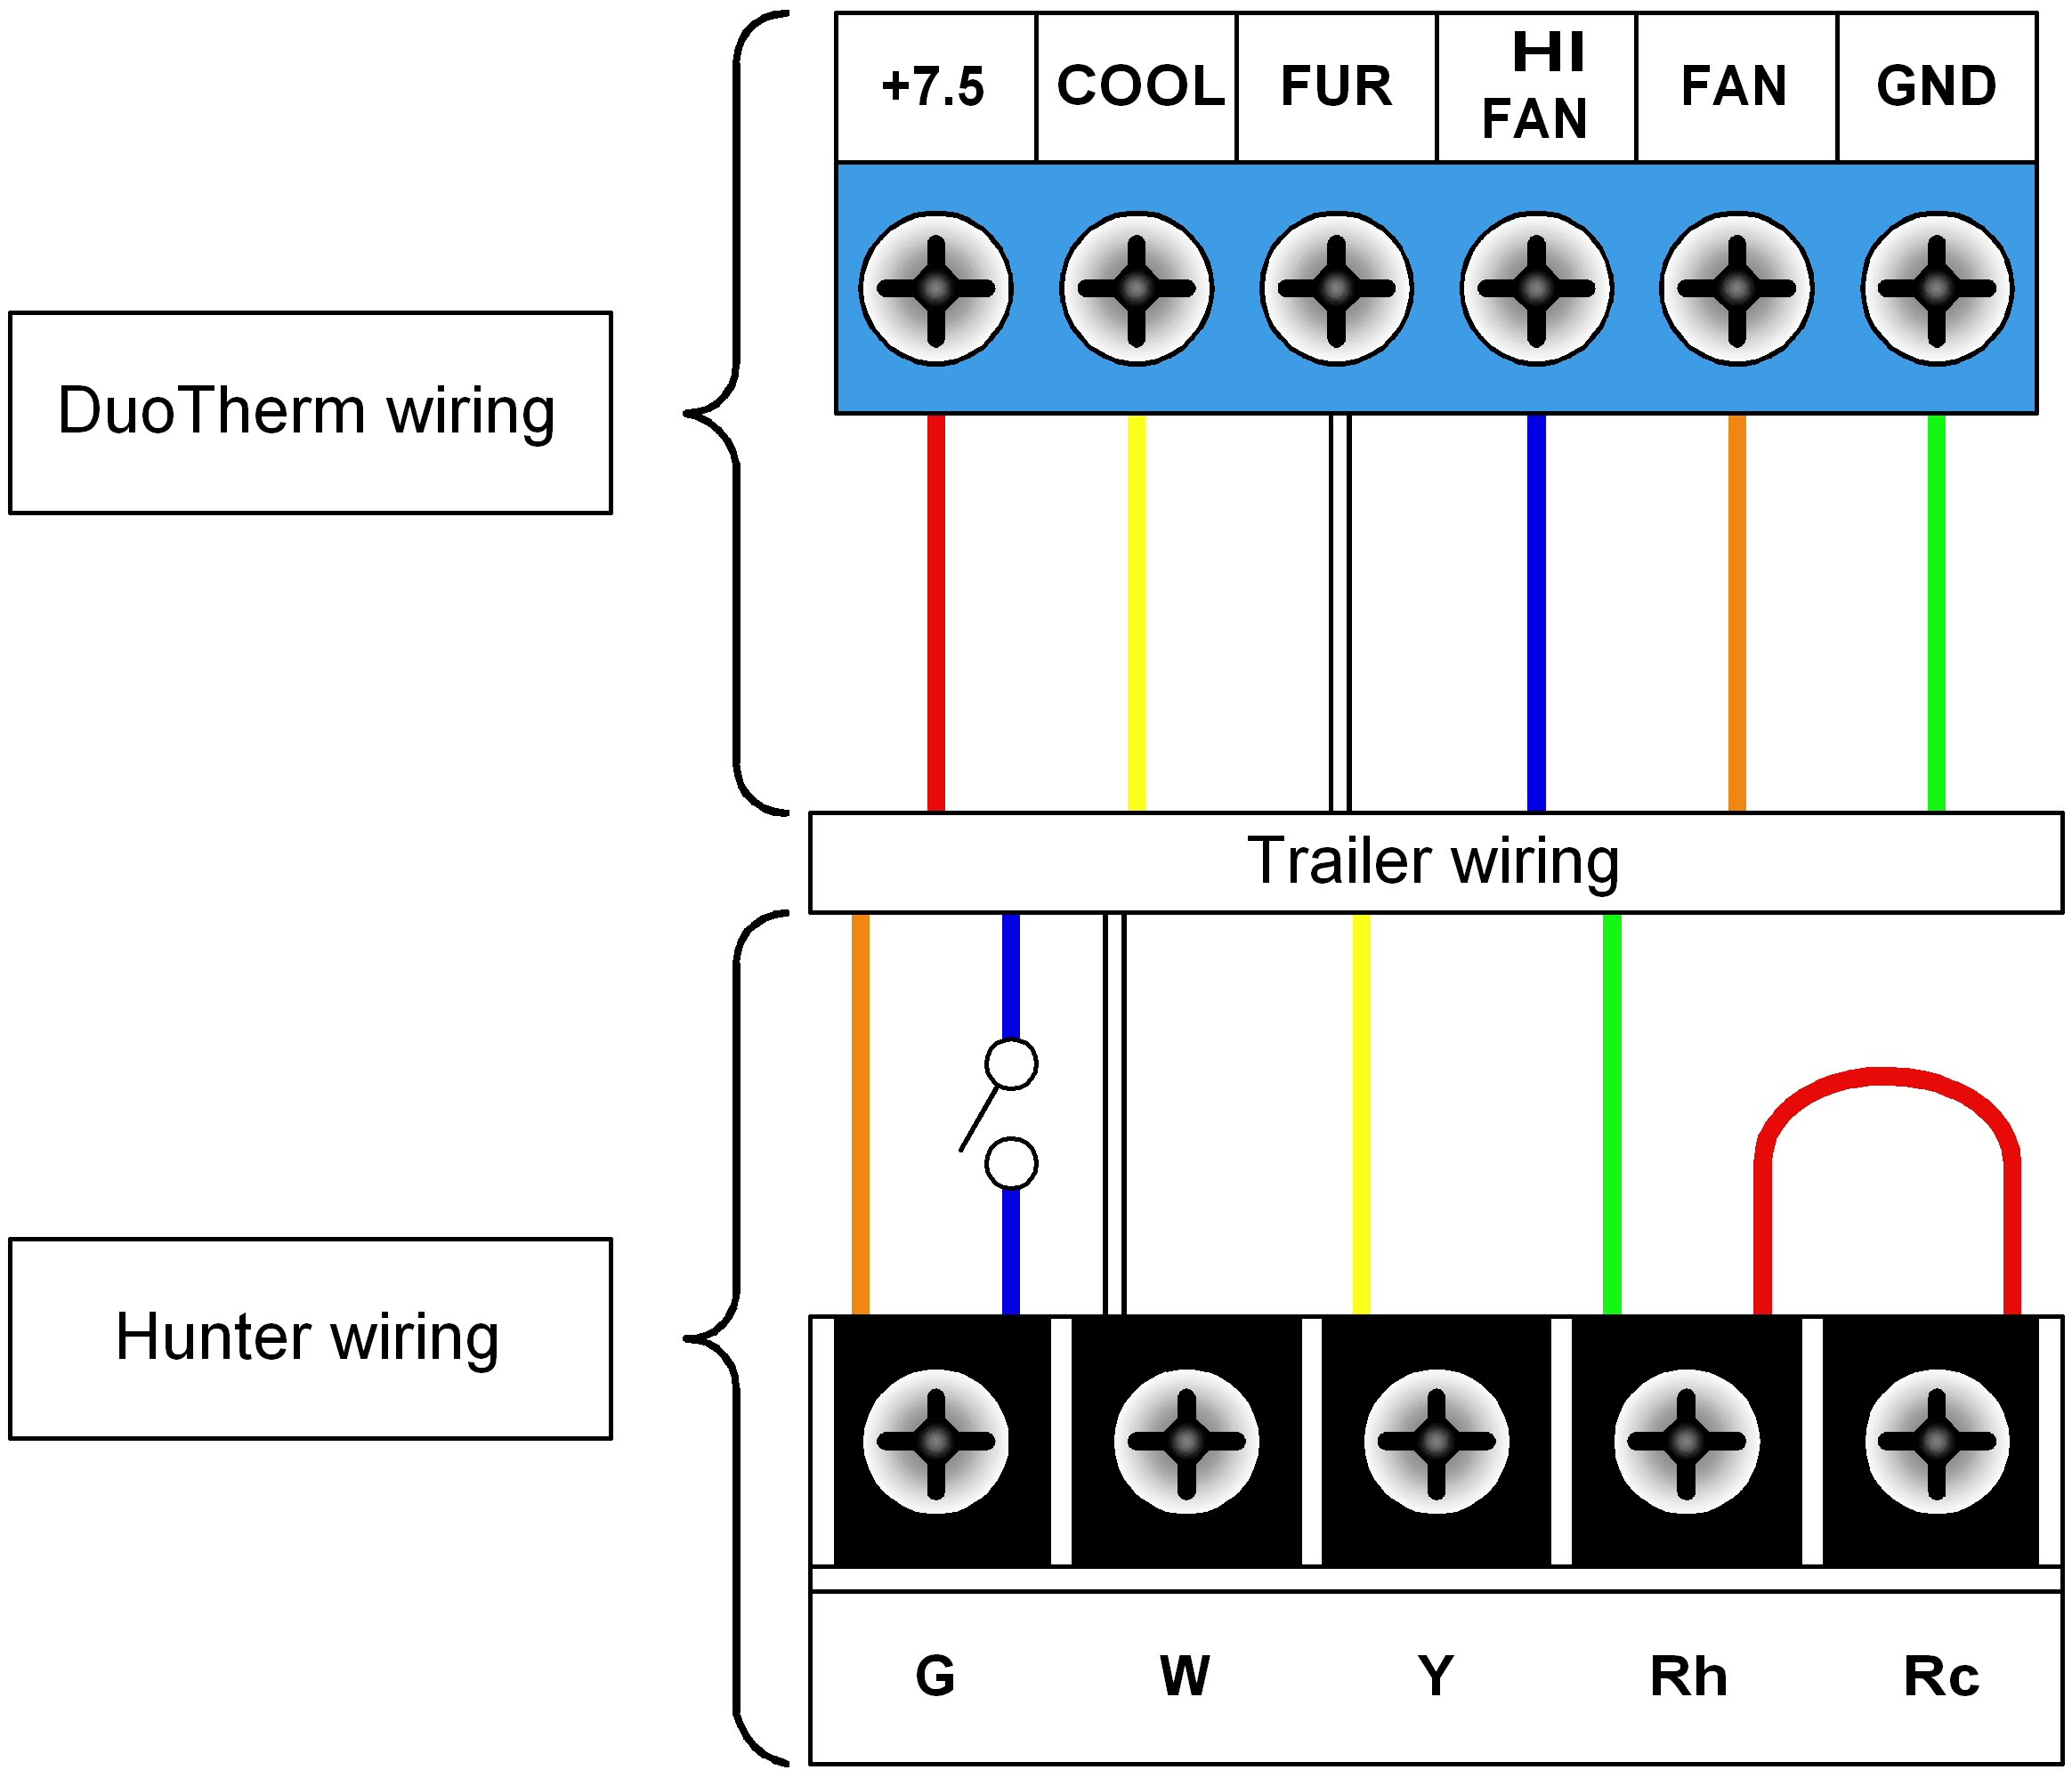 FX_2910] Hvac Wiring Color Codes Free Download Wiring Diagrams Pictures  Free Diagram | Hvac Pump Wiring Diagram |  | Osoph Mentra Mohammedshrine Librar Wiring 101